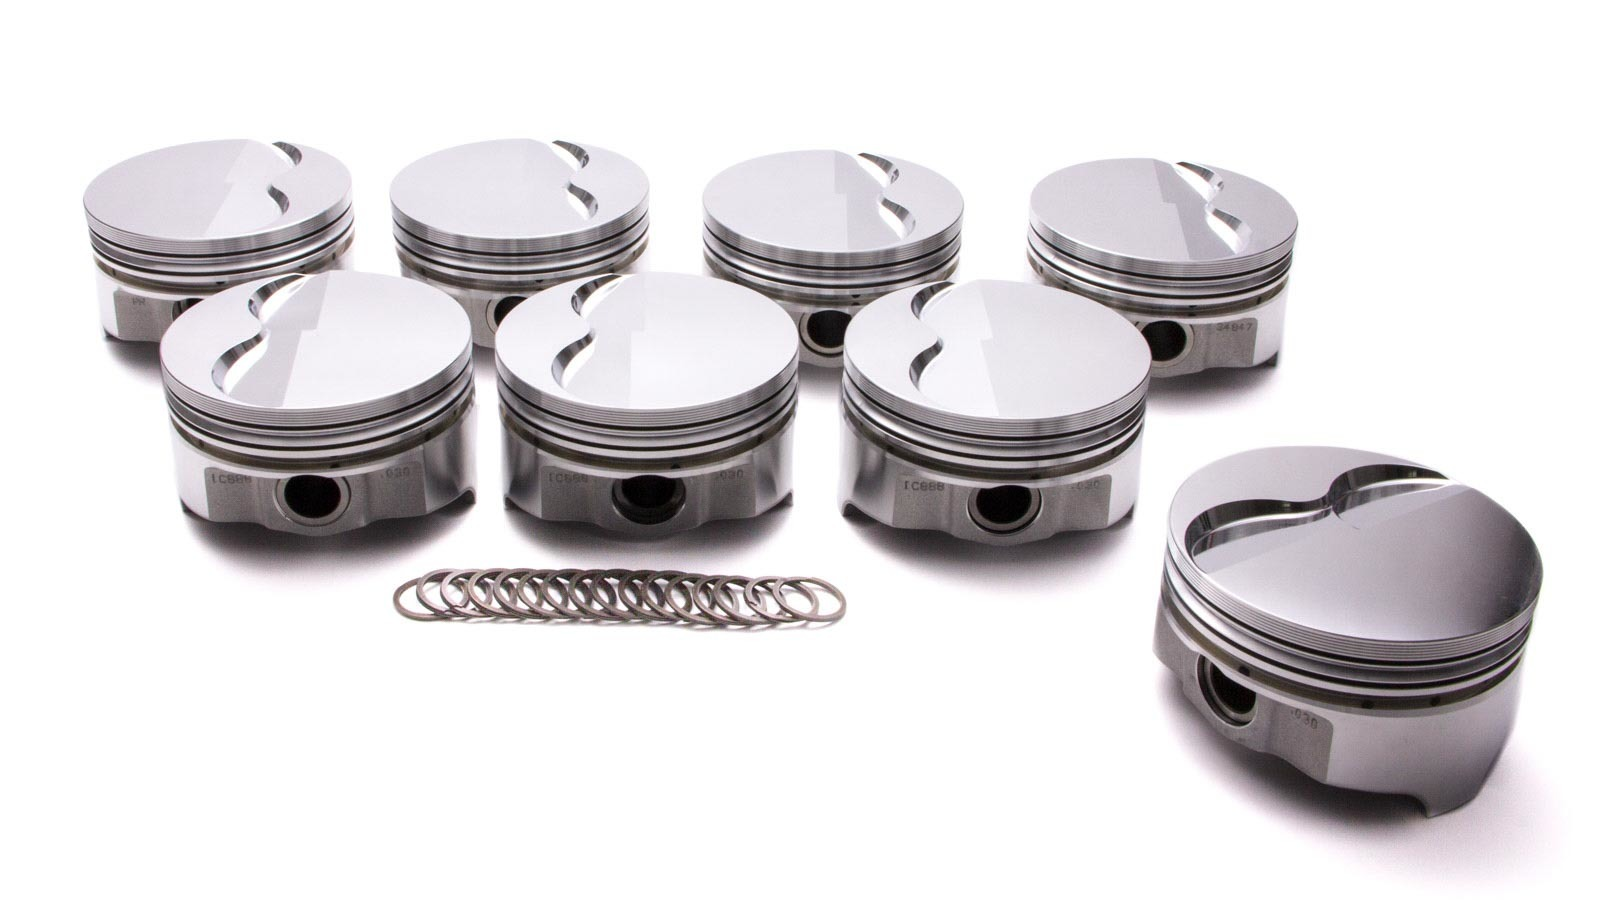 Pontiac 455 Forged F/T Piston Set 4.180 -5.5cc